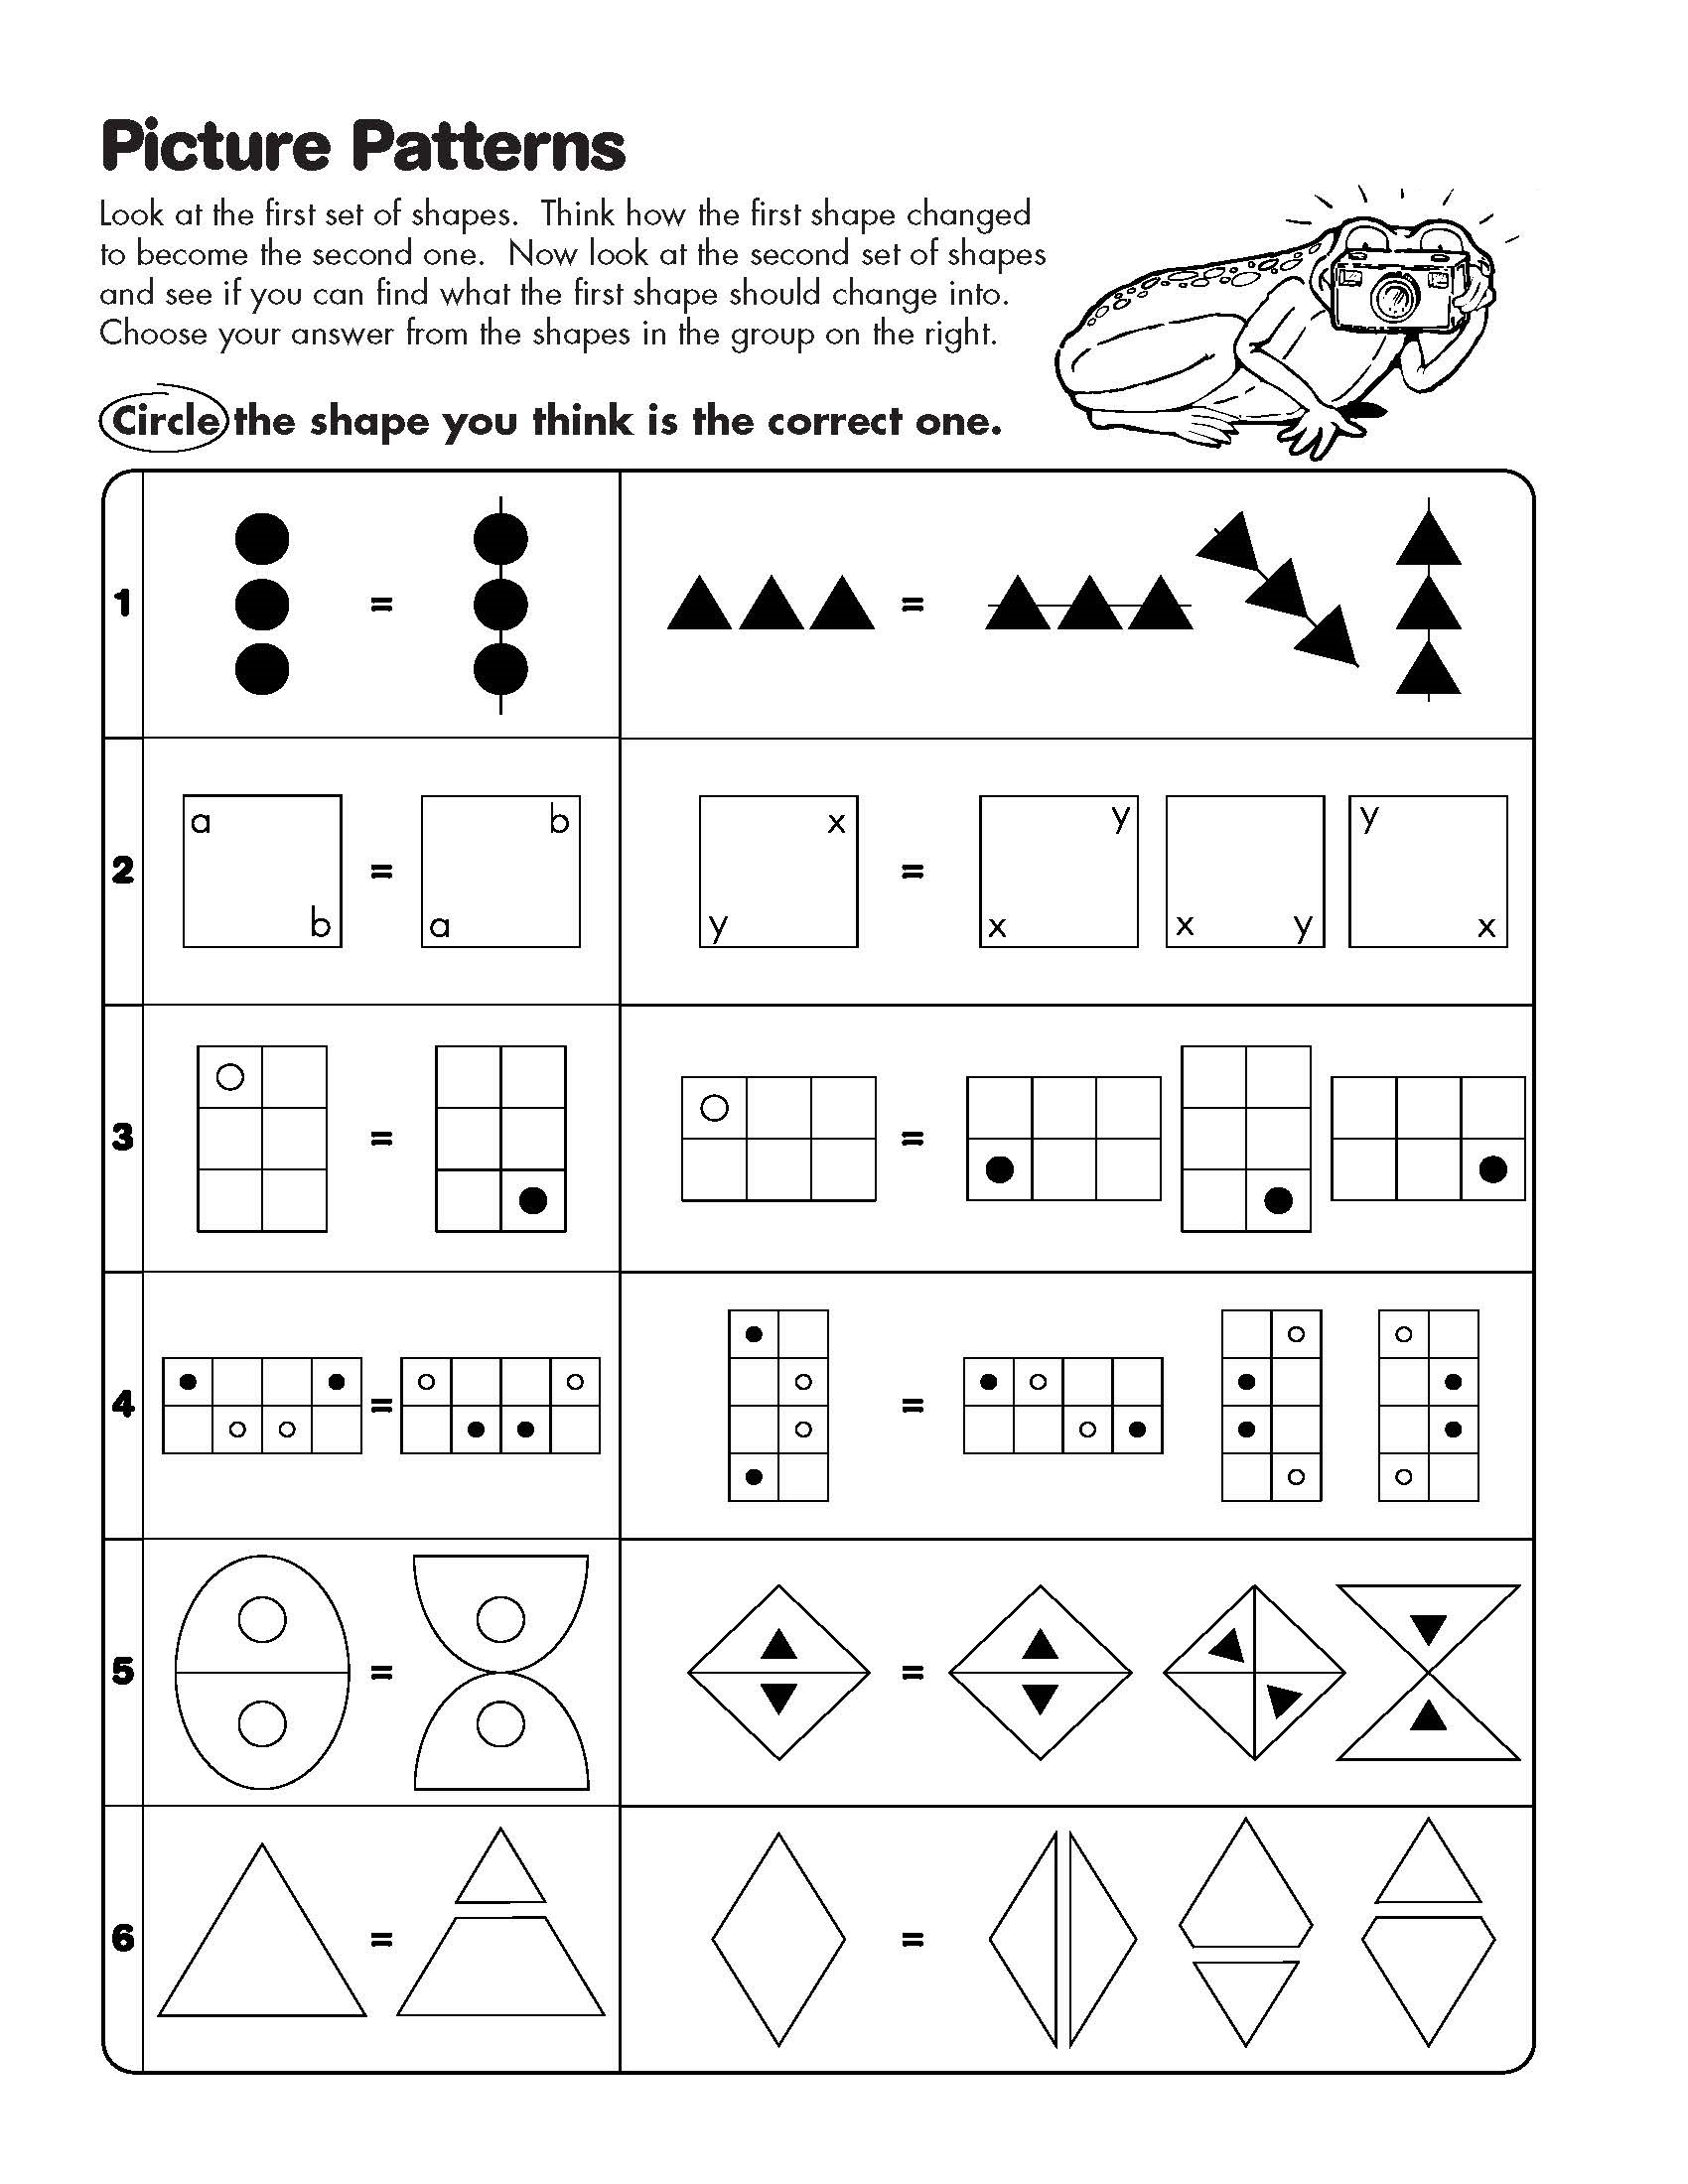 Picture Analogy Worksheets Free Worksheets Library – Analogy Worksheets for 5th Grade